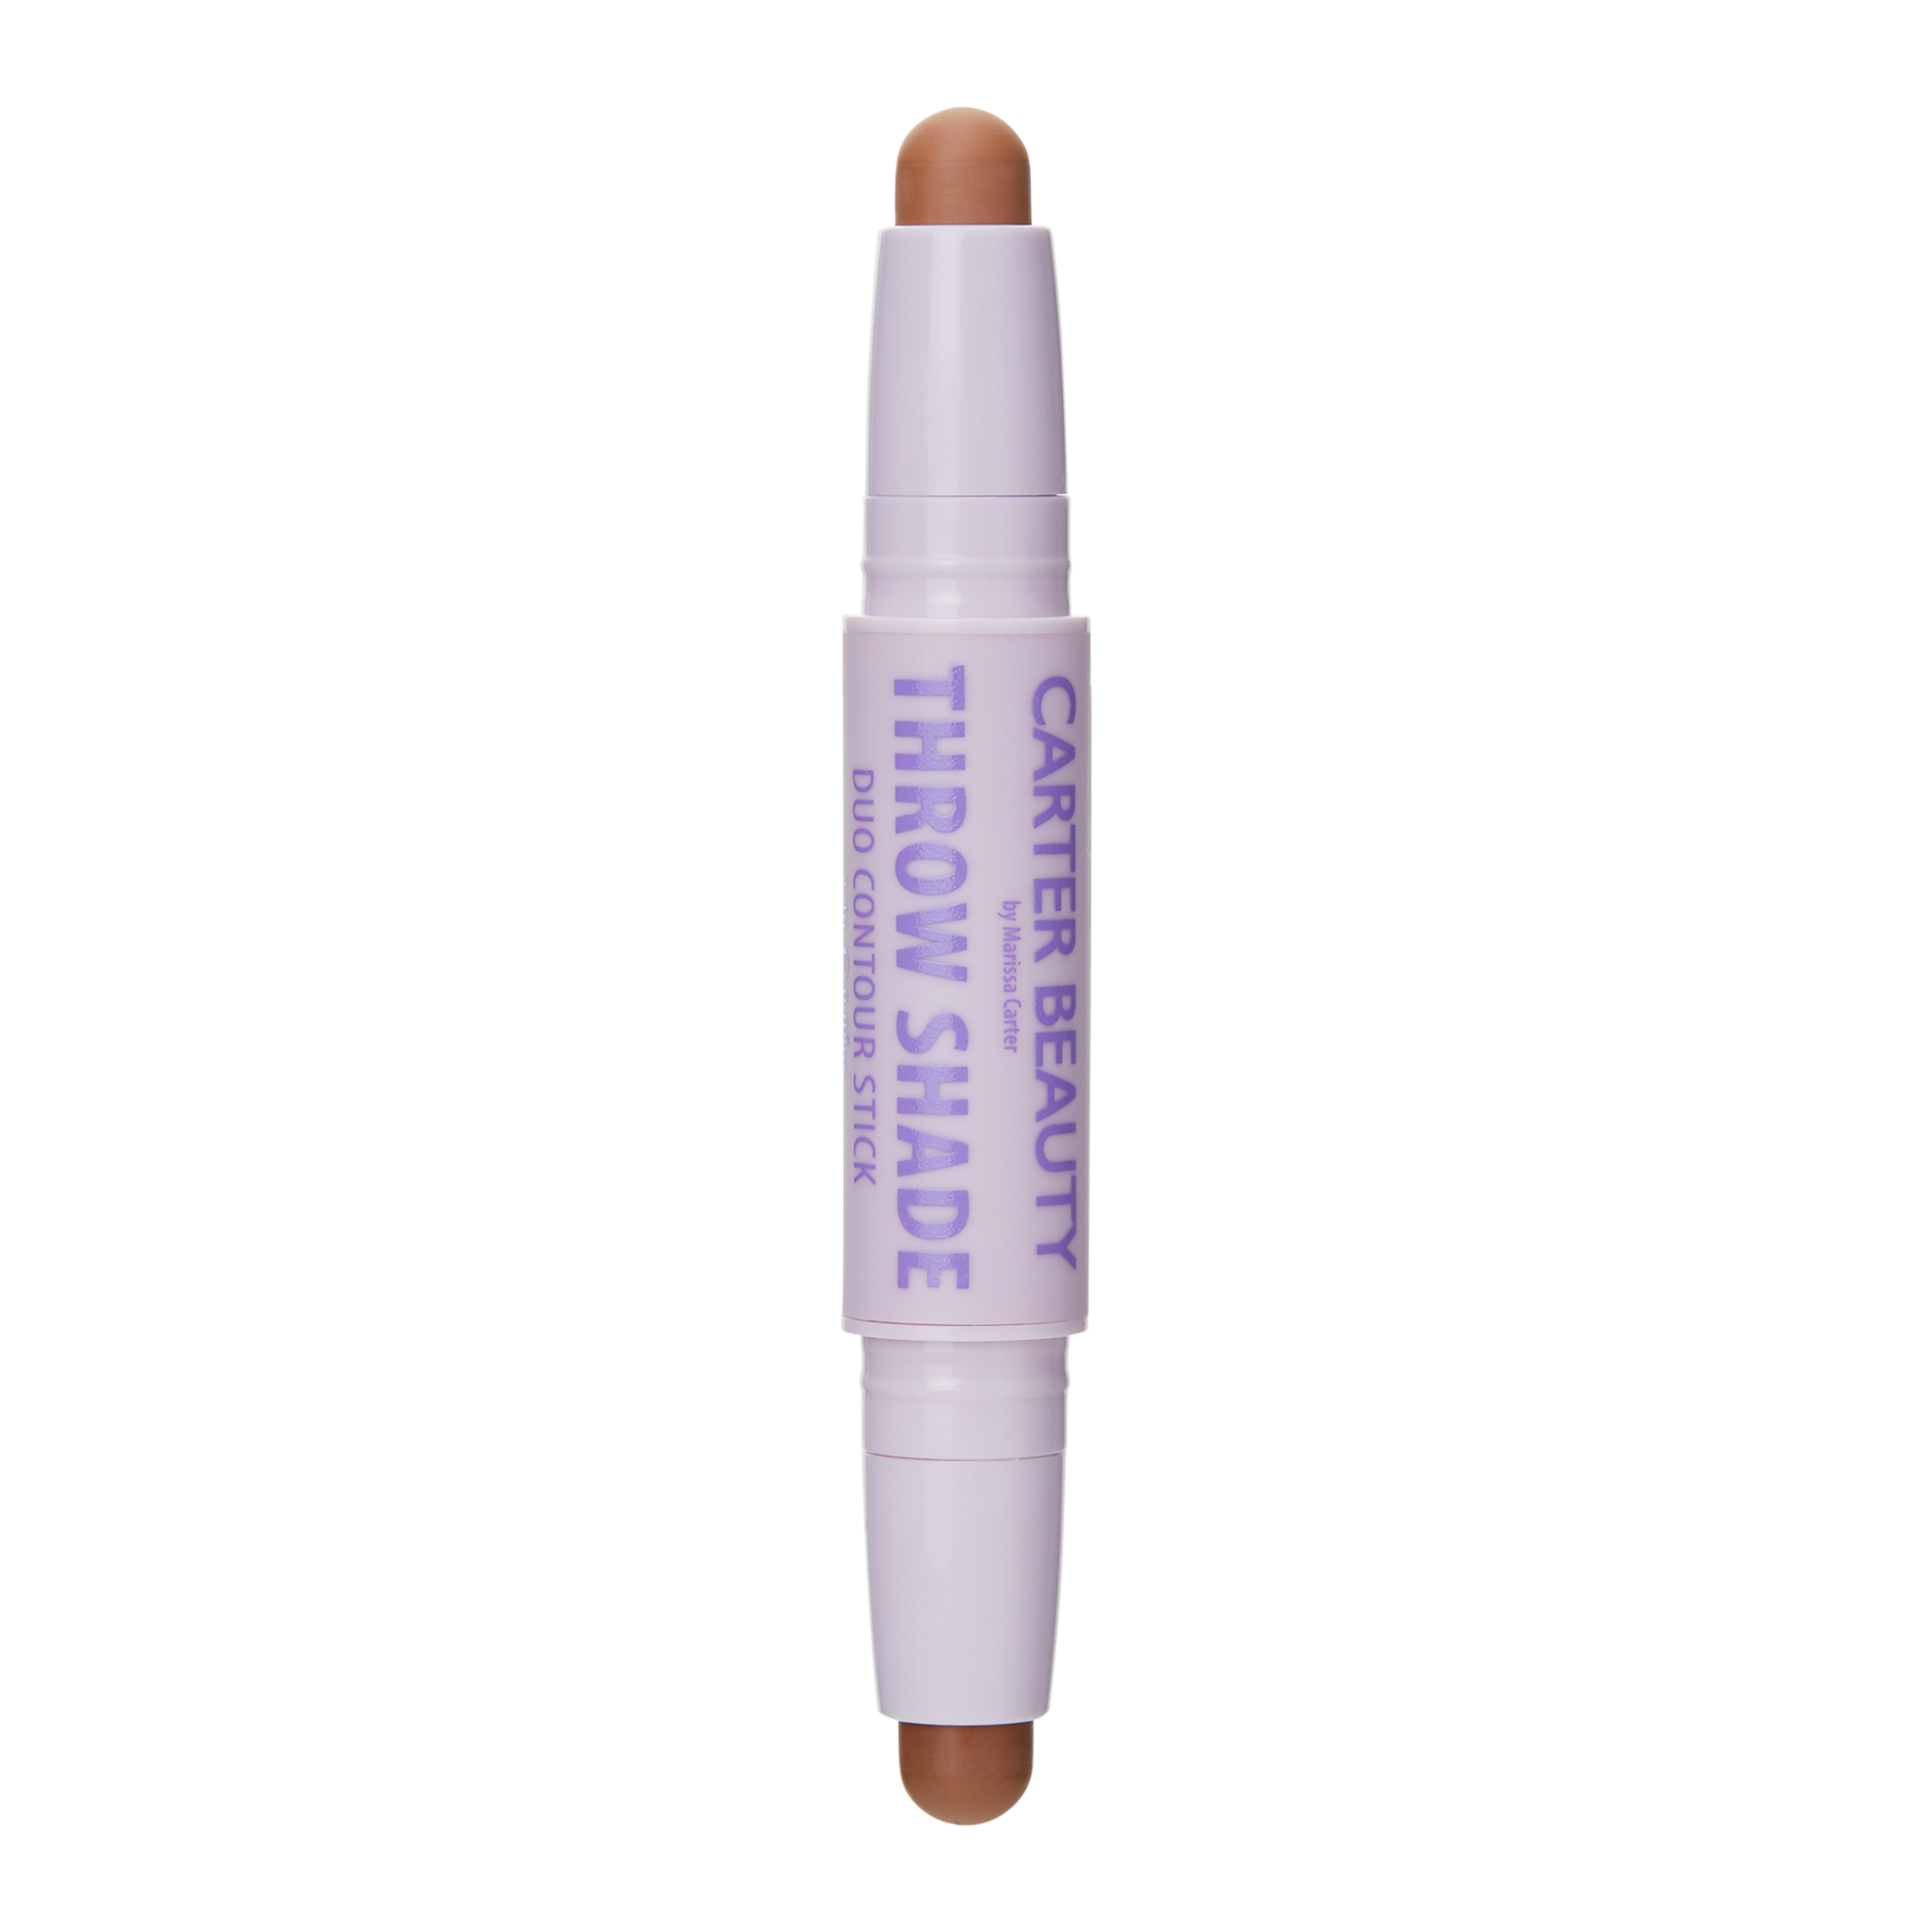 Throw Shade Duo Contour Stick